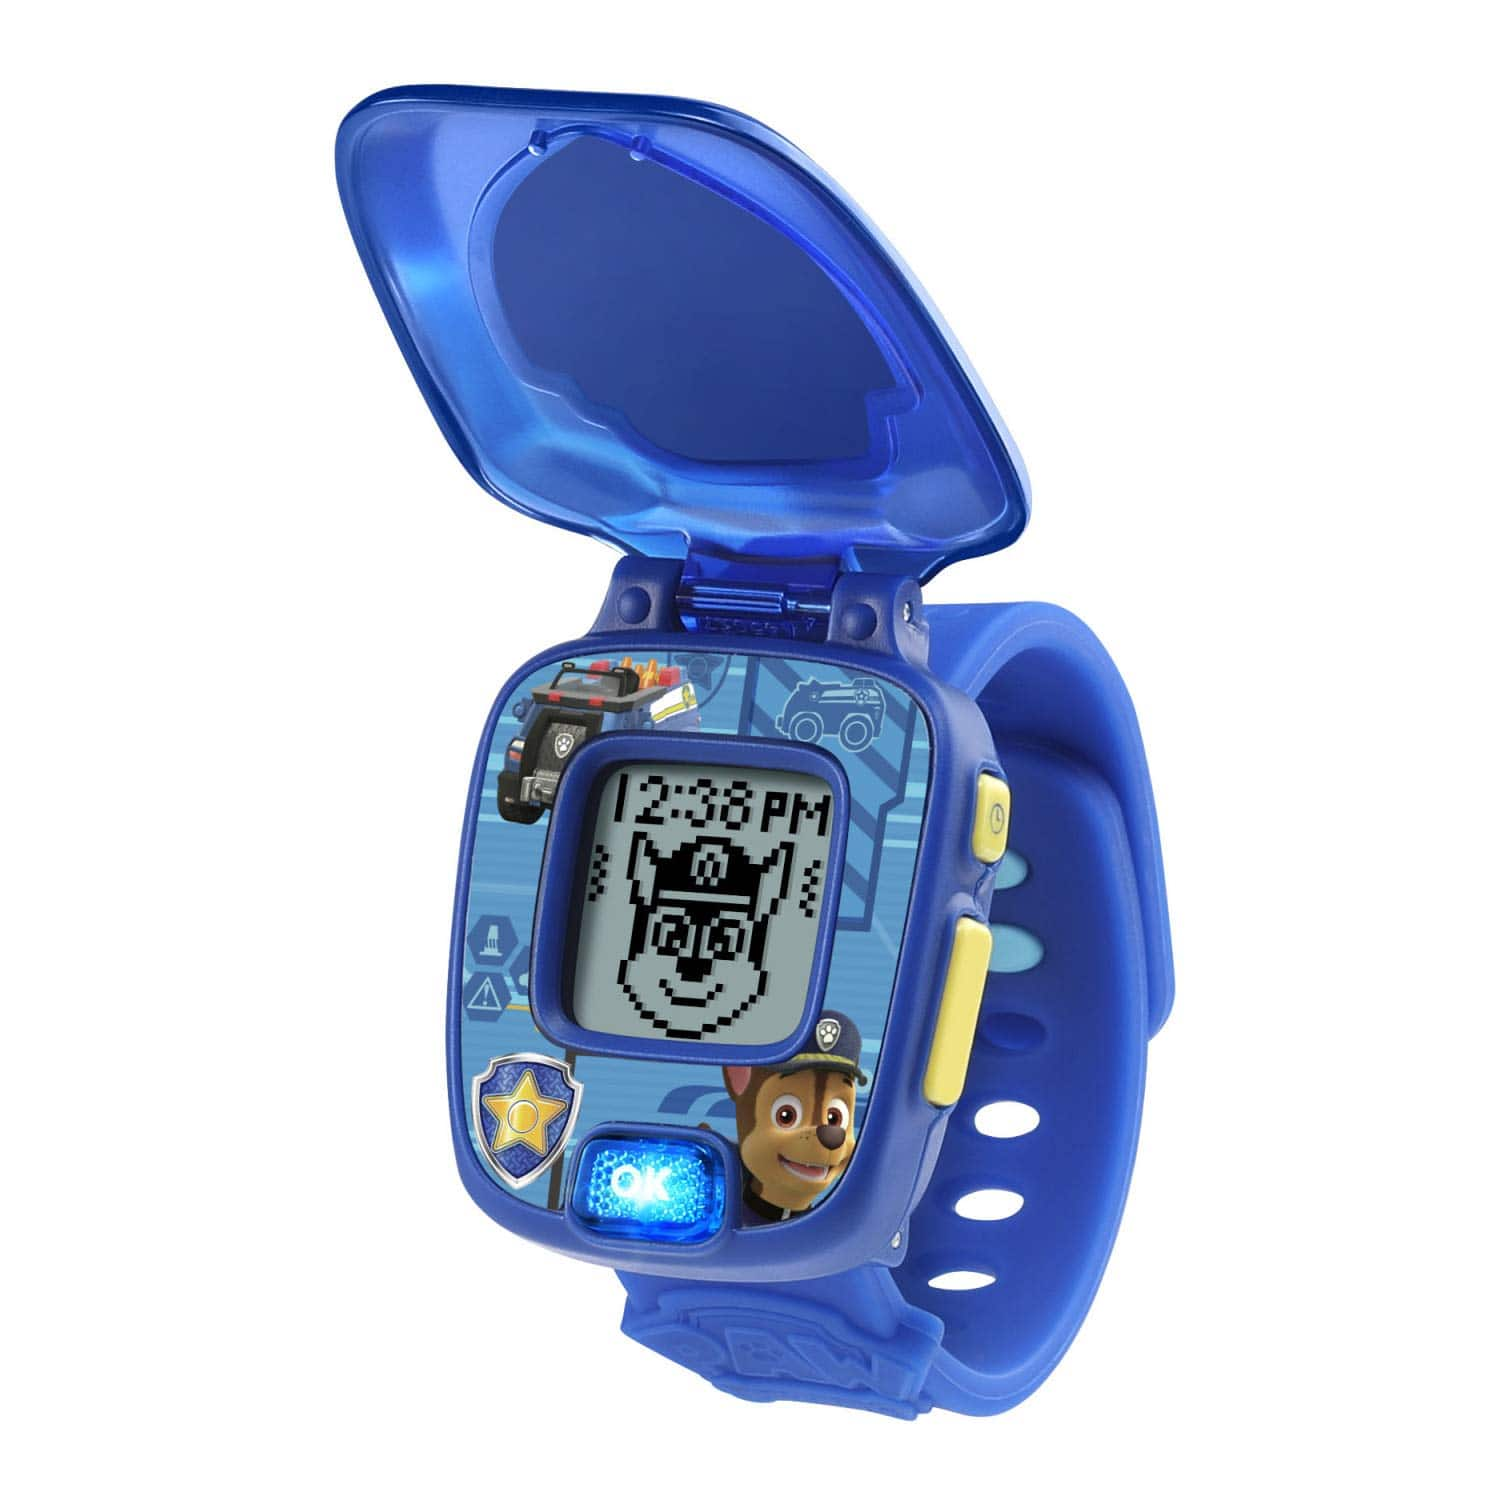 VTech Paw Patrol Chase Learning Watch, Blue: $11 + FS w/Prime